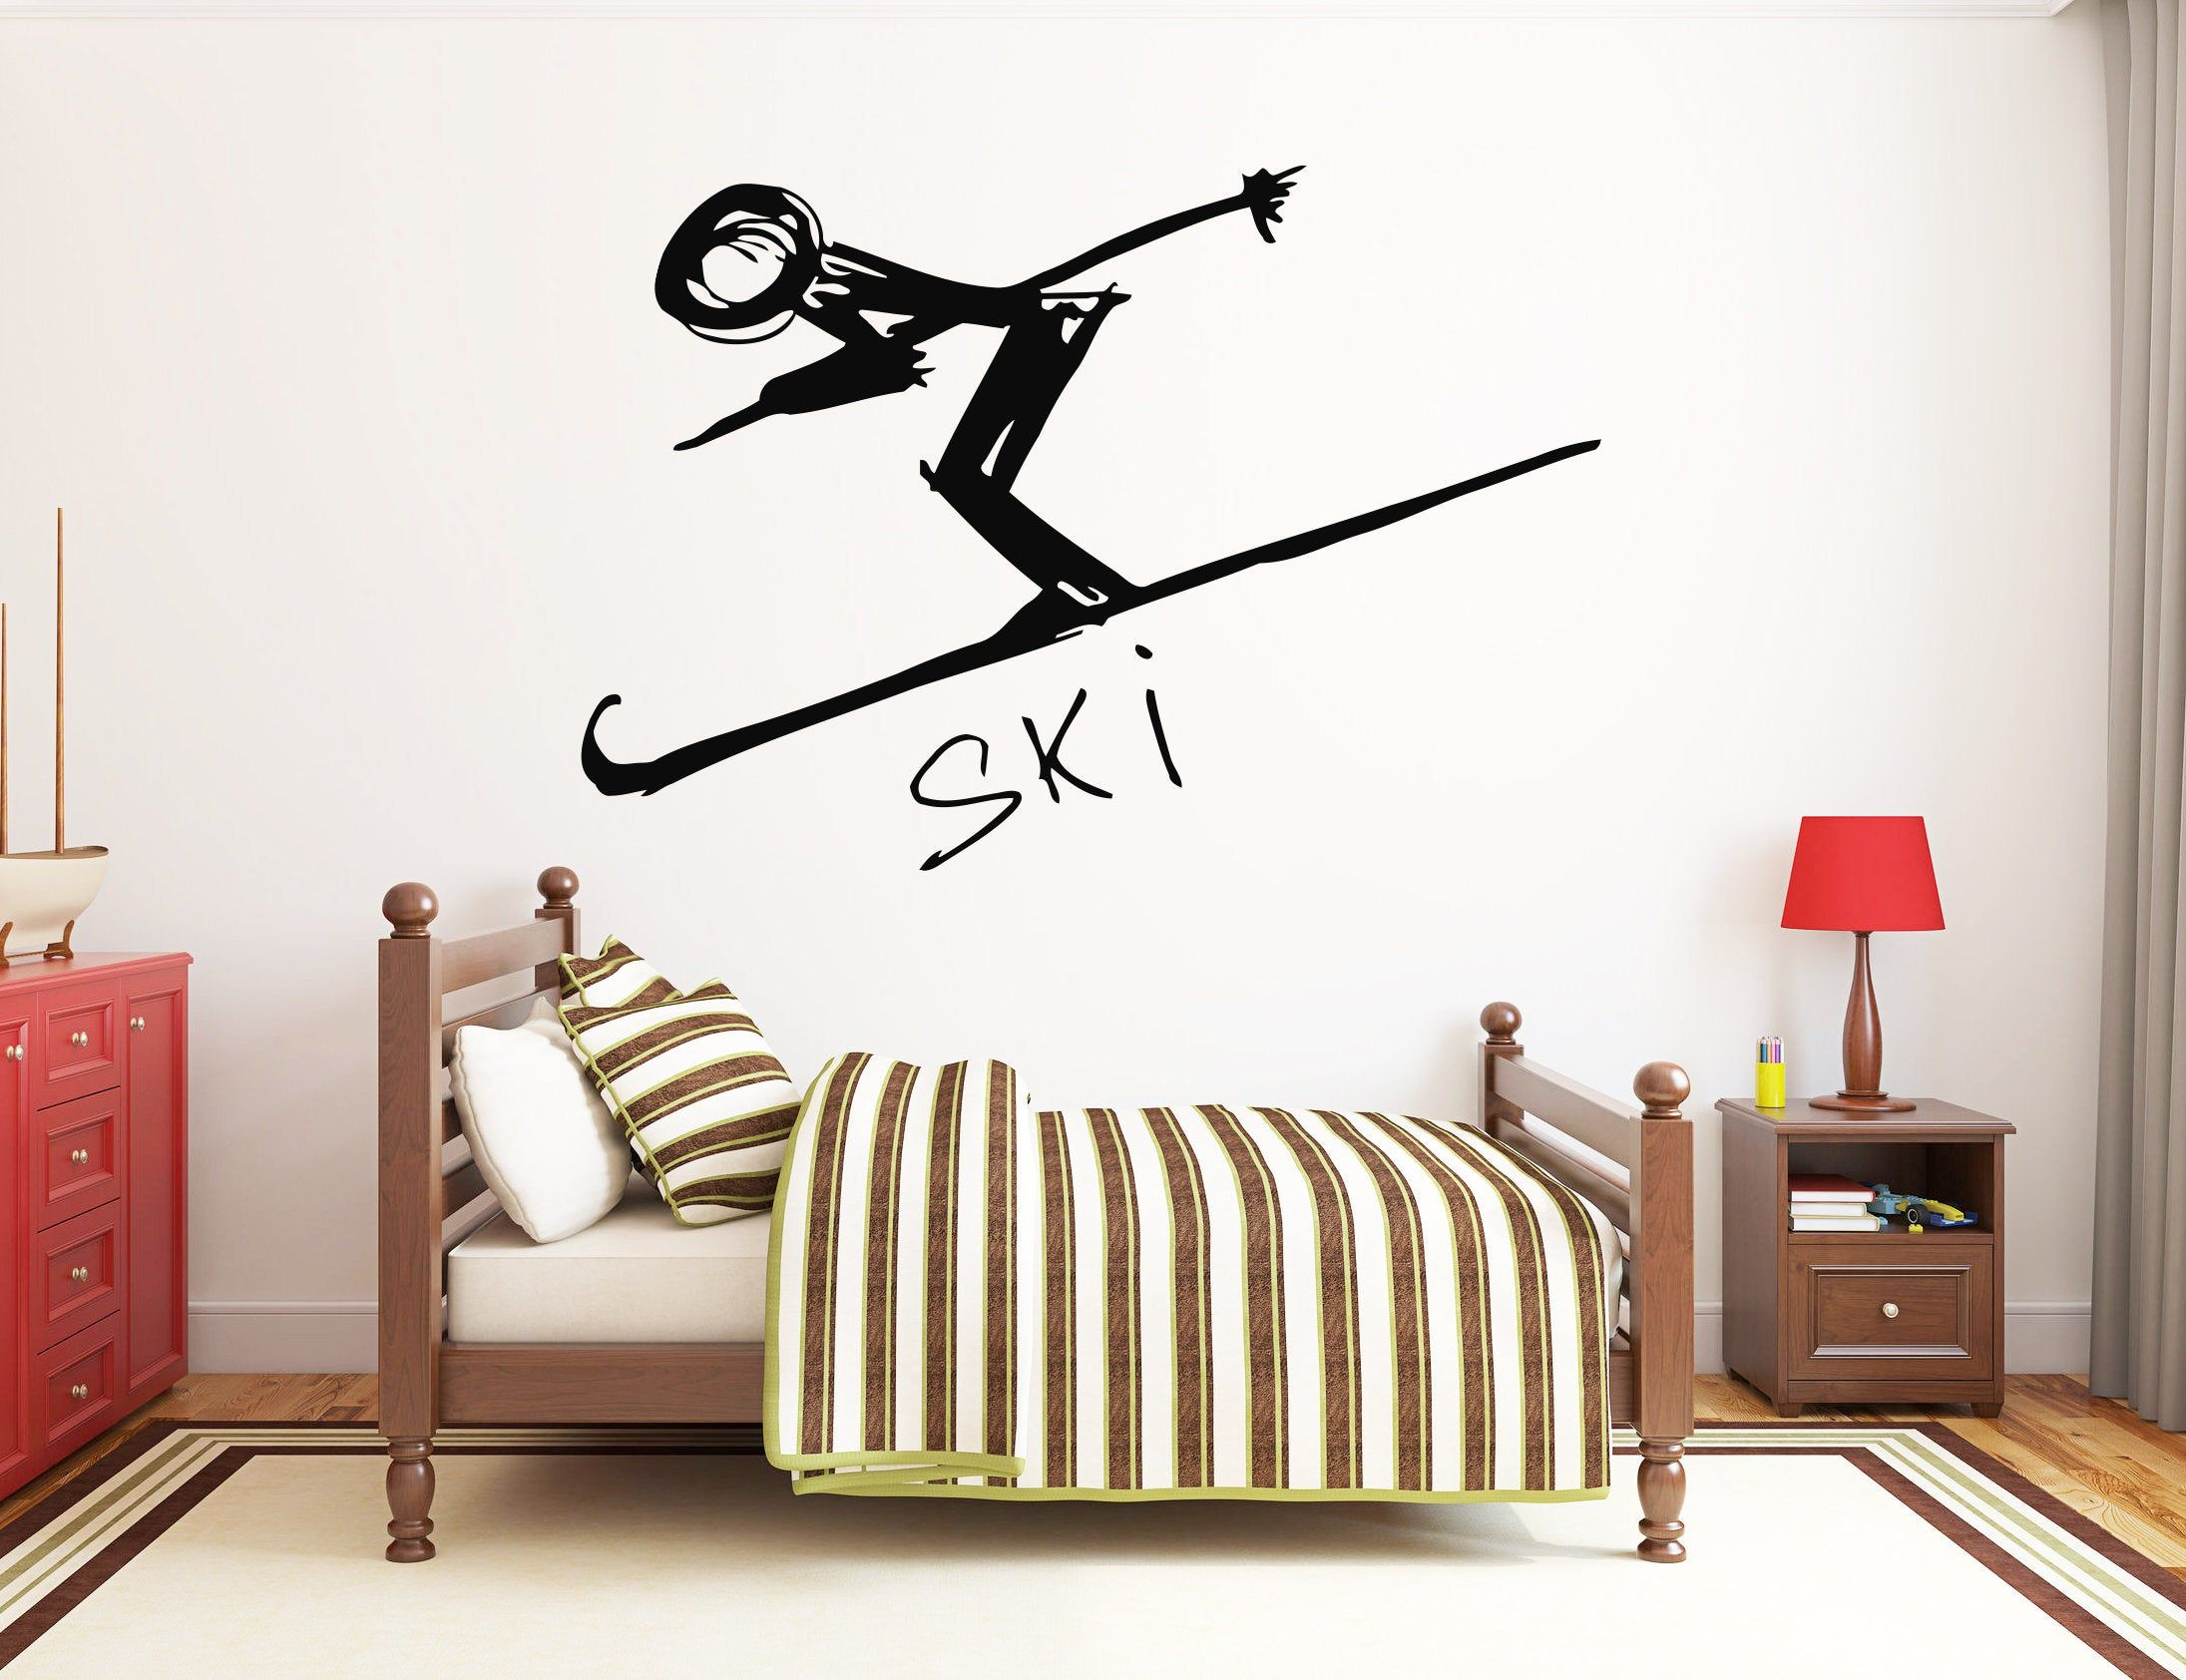 Ski Wall Decal Winter Sports Wall Decor Skiing Wall Art Skied Etsy Sports Wall Decor Sports Wall Sports Wall Decals